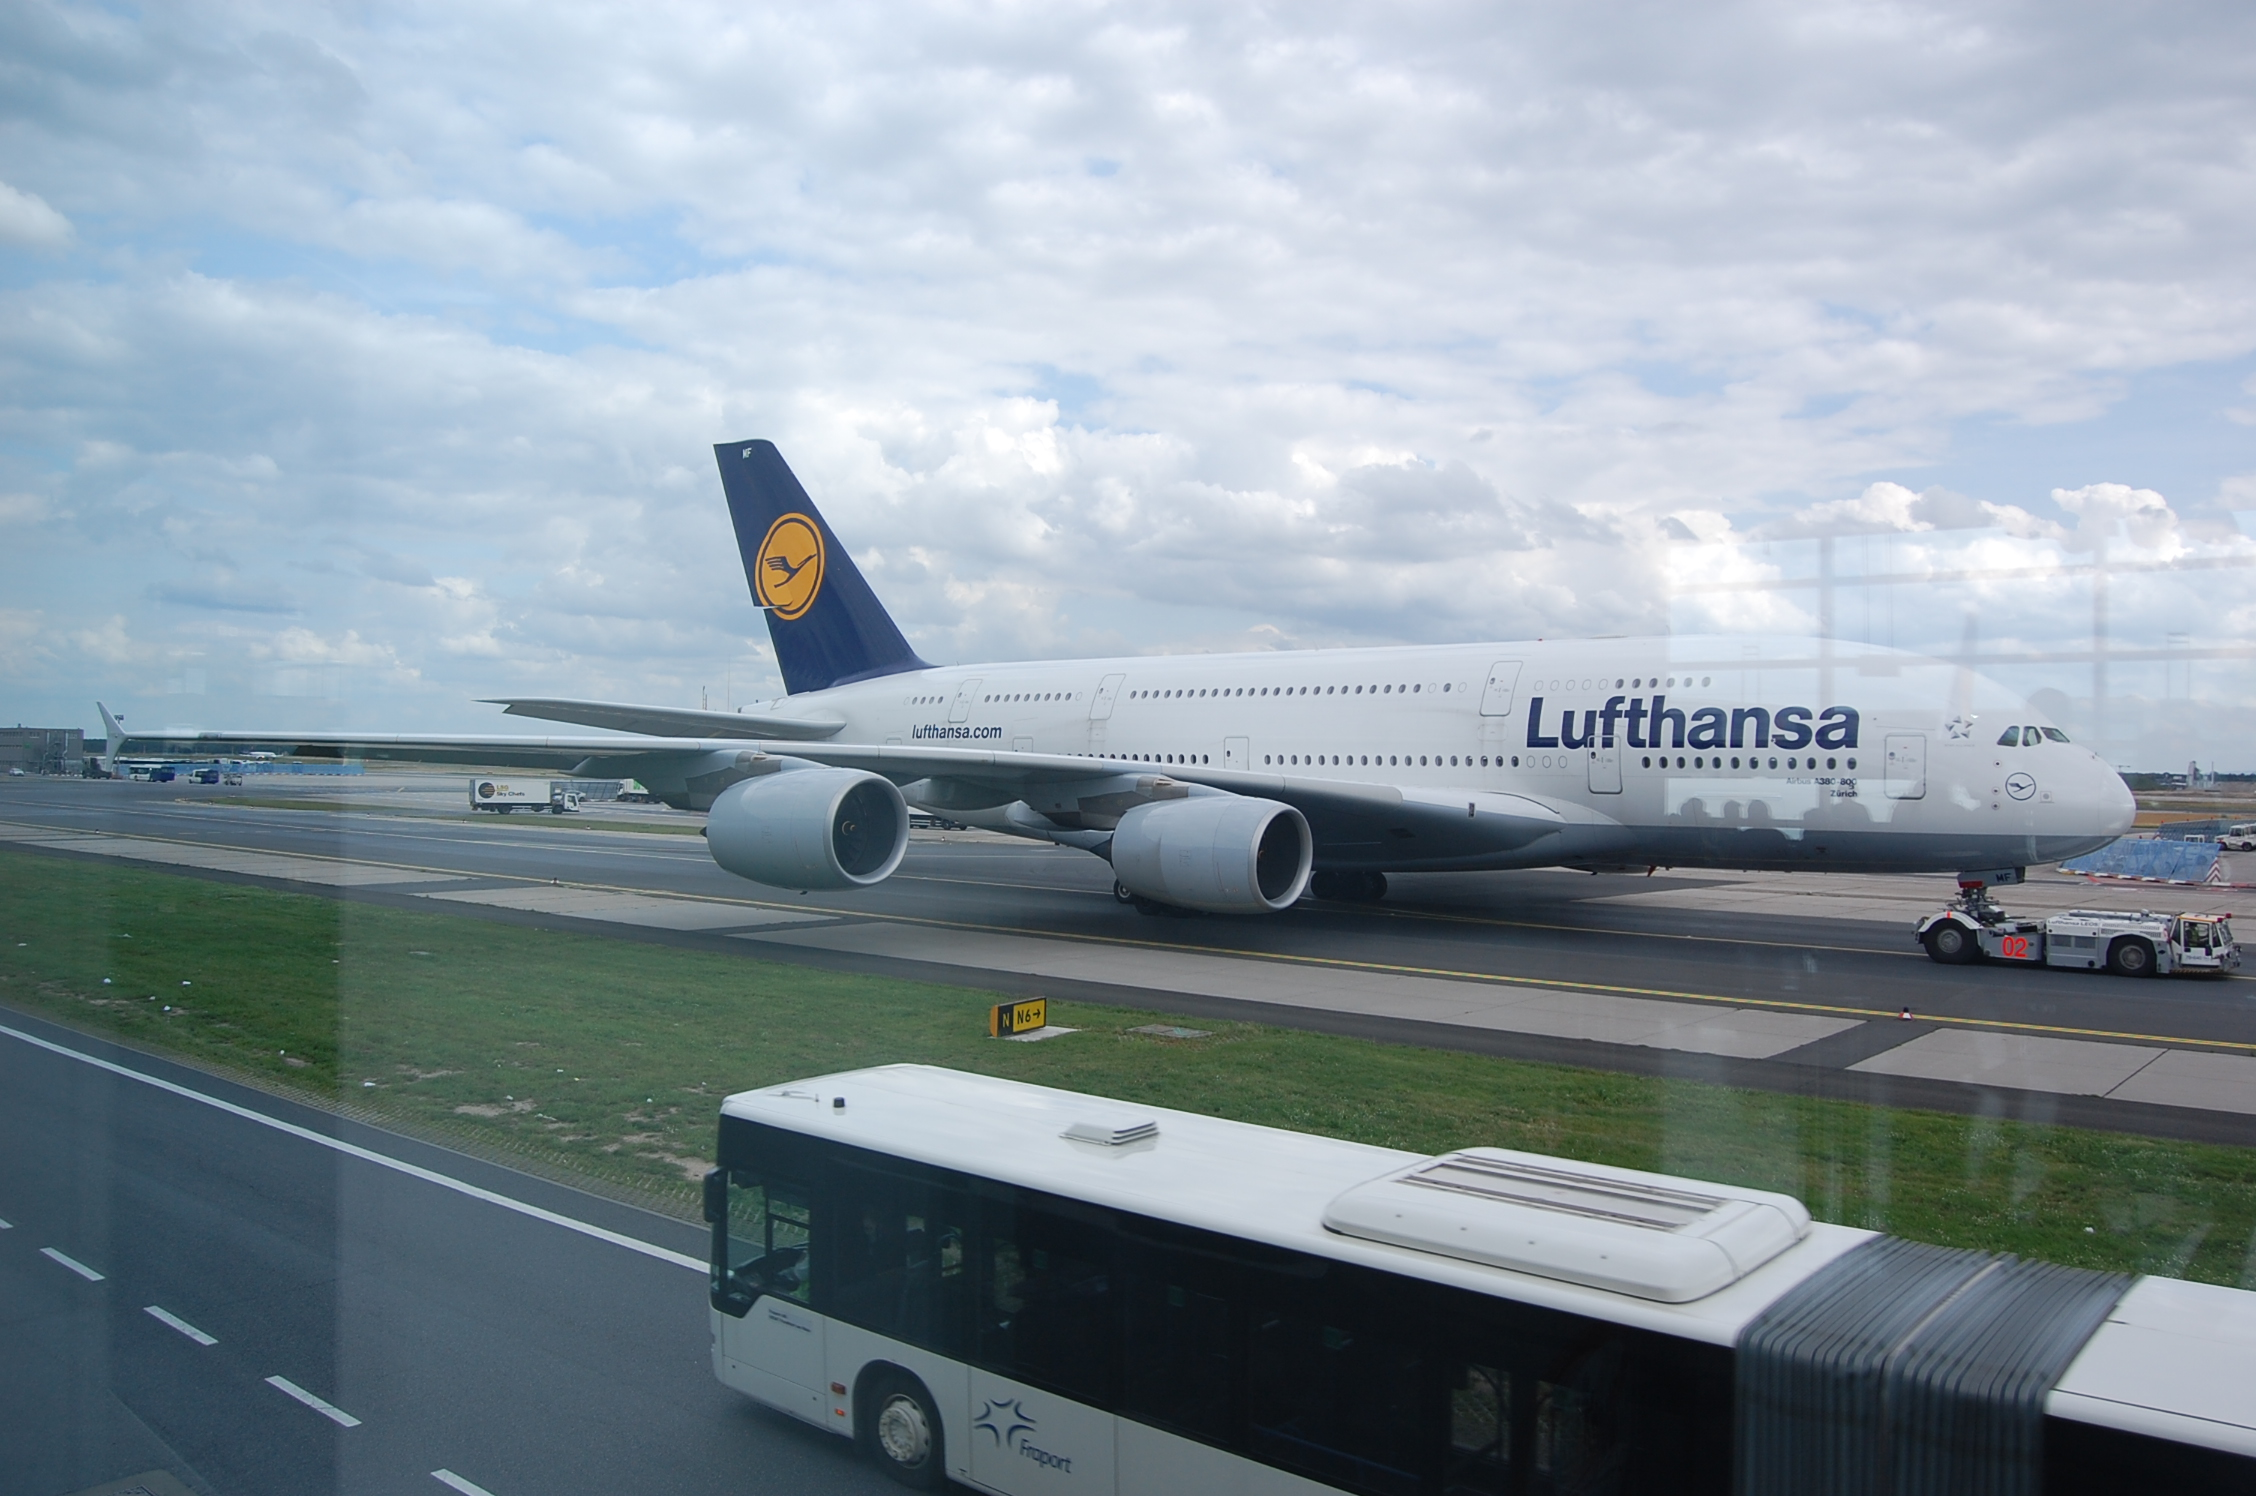 lufthansa a380 800 eddf ah45 39 s flights gallery. Black Bedroom Furniture Sets. Home Design Ideas